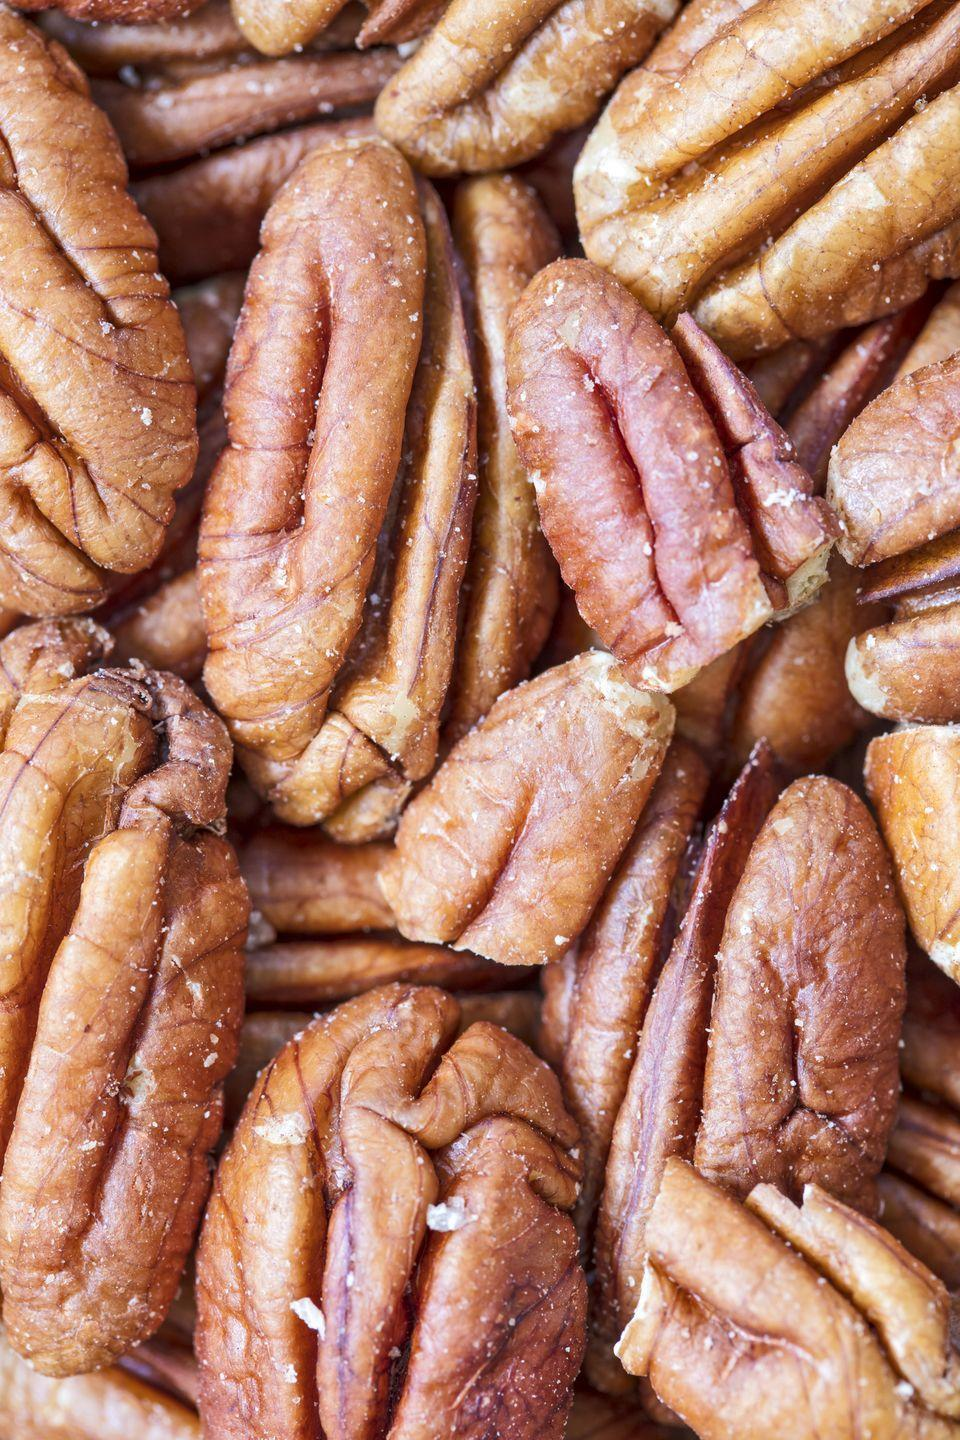 "<p>Pecans are chock-full of <a href=""https://www.goodhousekeeping.com/health/diet-nutrition/a47166/health-benefits-of-pecans/"" rel=""nofollow noopener"" target=""_blank"" data-ylk=""slk:monounsaturated fatty acids"" class=""link rapid-noclick-resp"">monounsaturated fatty acids</a>, a type of fat linked with improving total cholesterol levels. Another benefit of these tasty tree nuts: Pecans are filled with plant-based antioxidants — including beta carotene and vitamin E — that protect cells from damage from chronic inflammation.</p>"